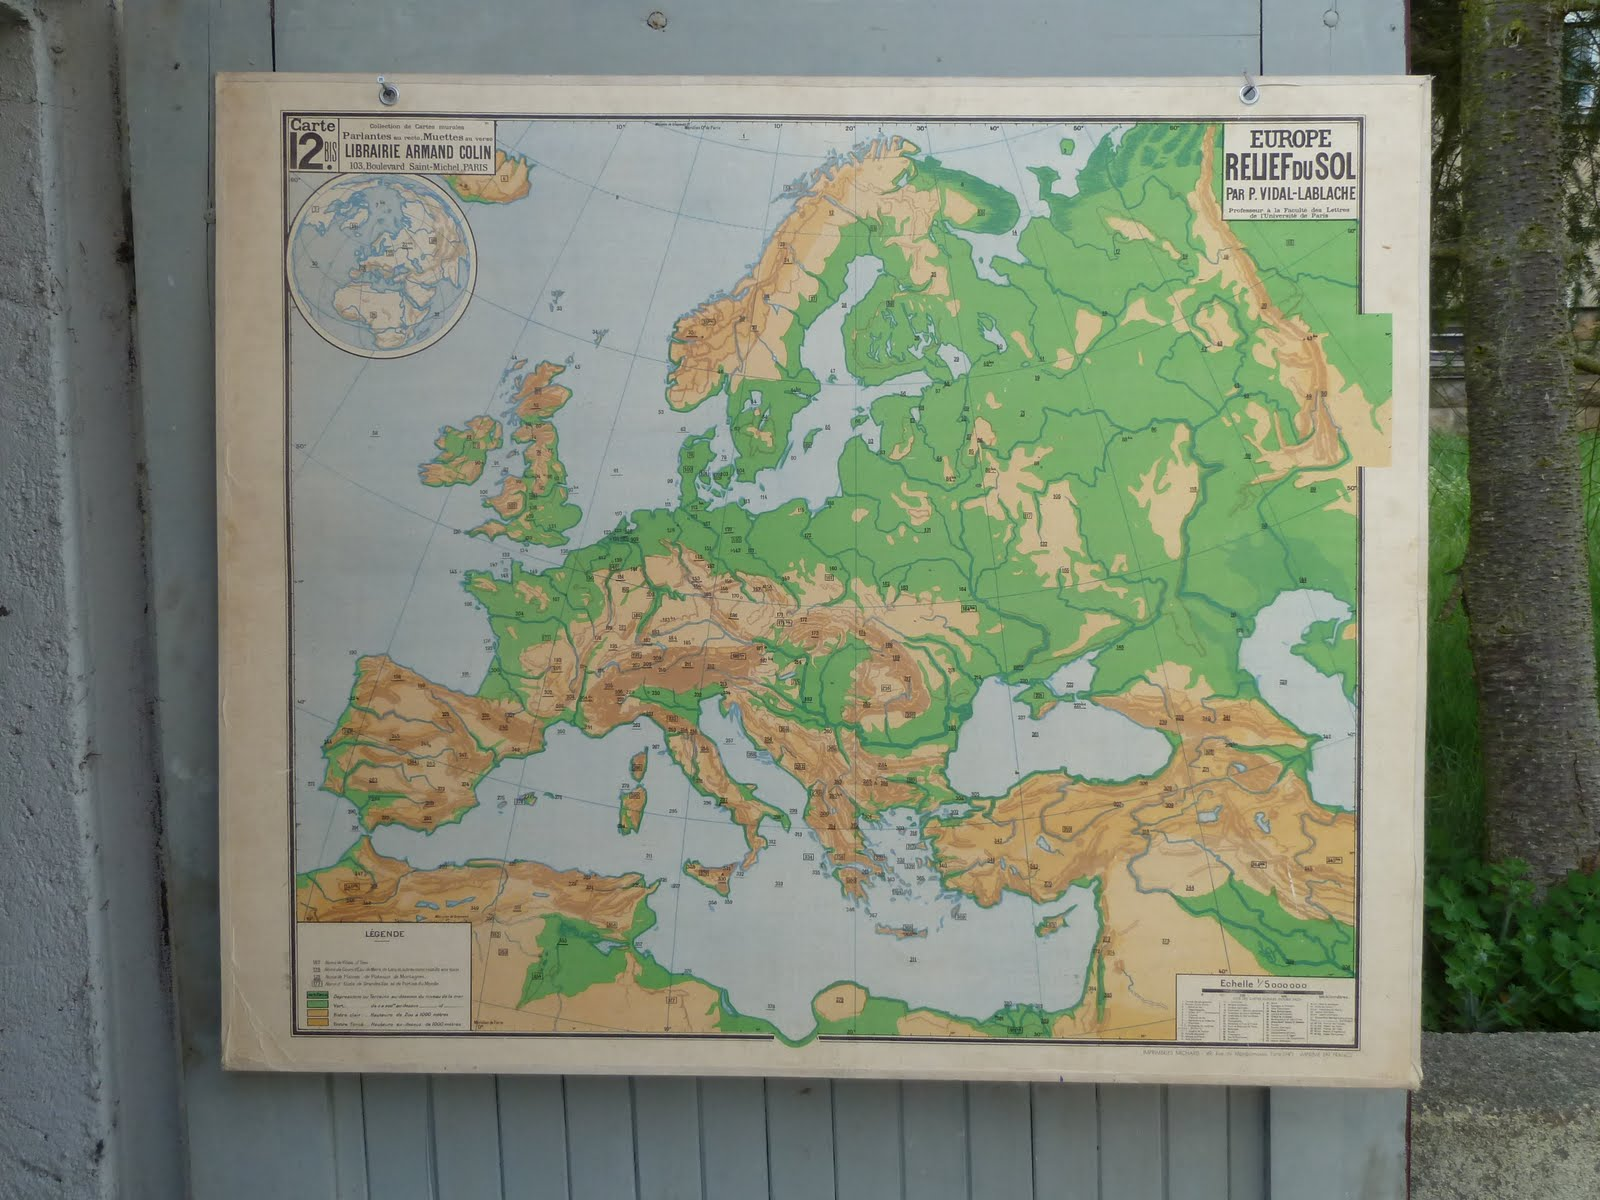 Vintage French Posters Botany Animals Anatomy Old World Maps From - Vintage europe map poster